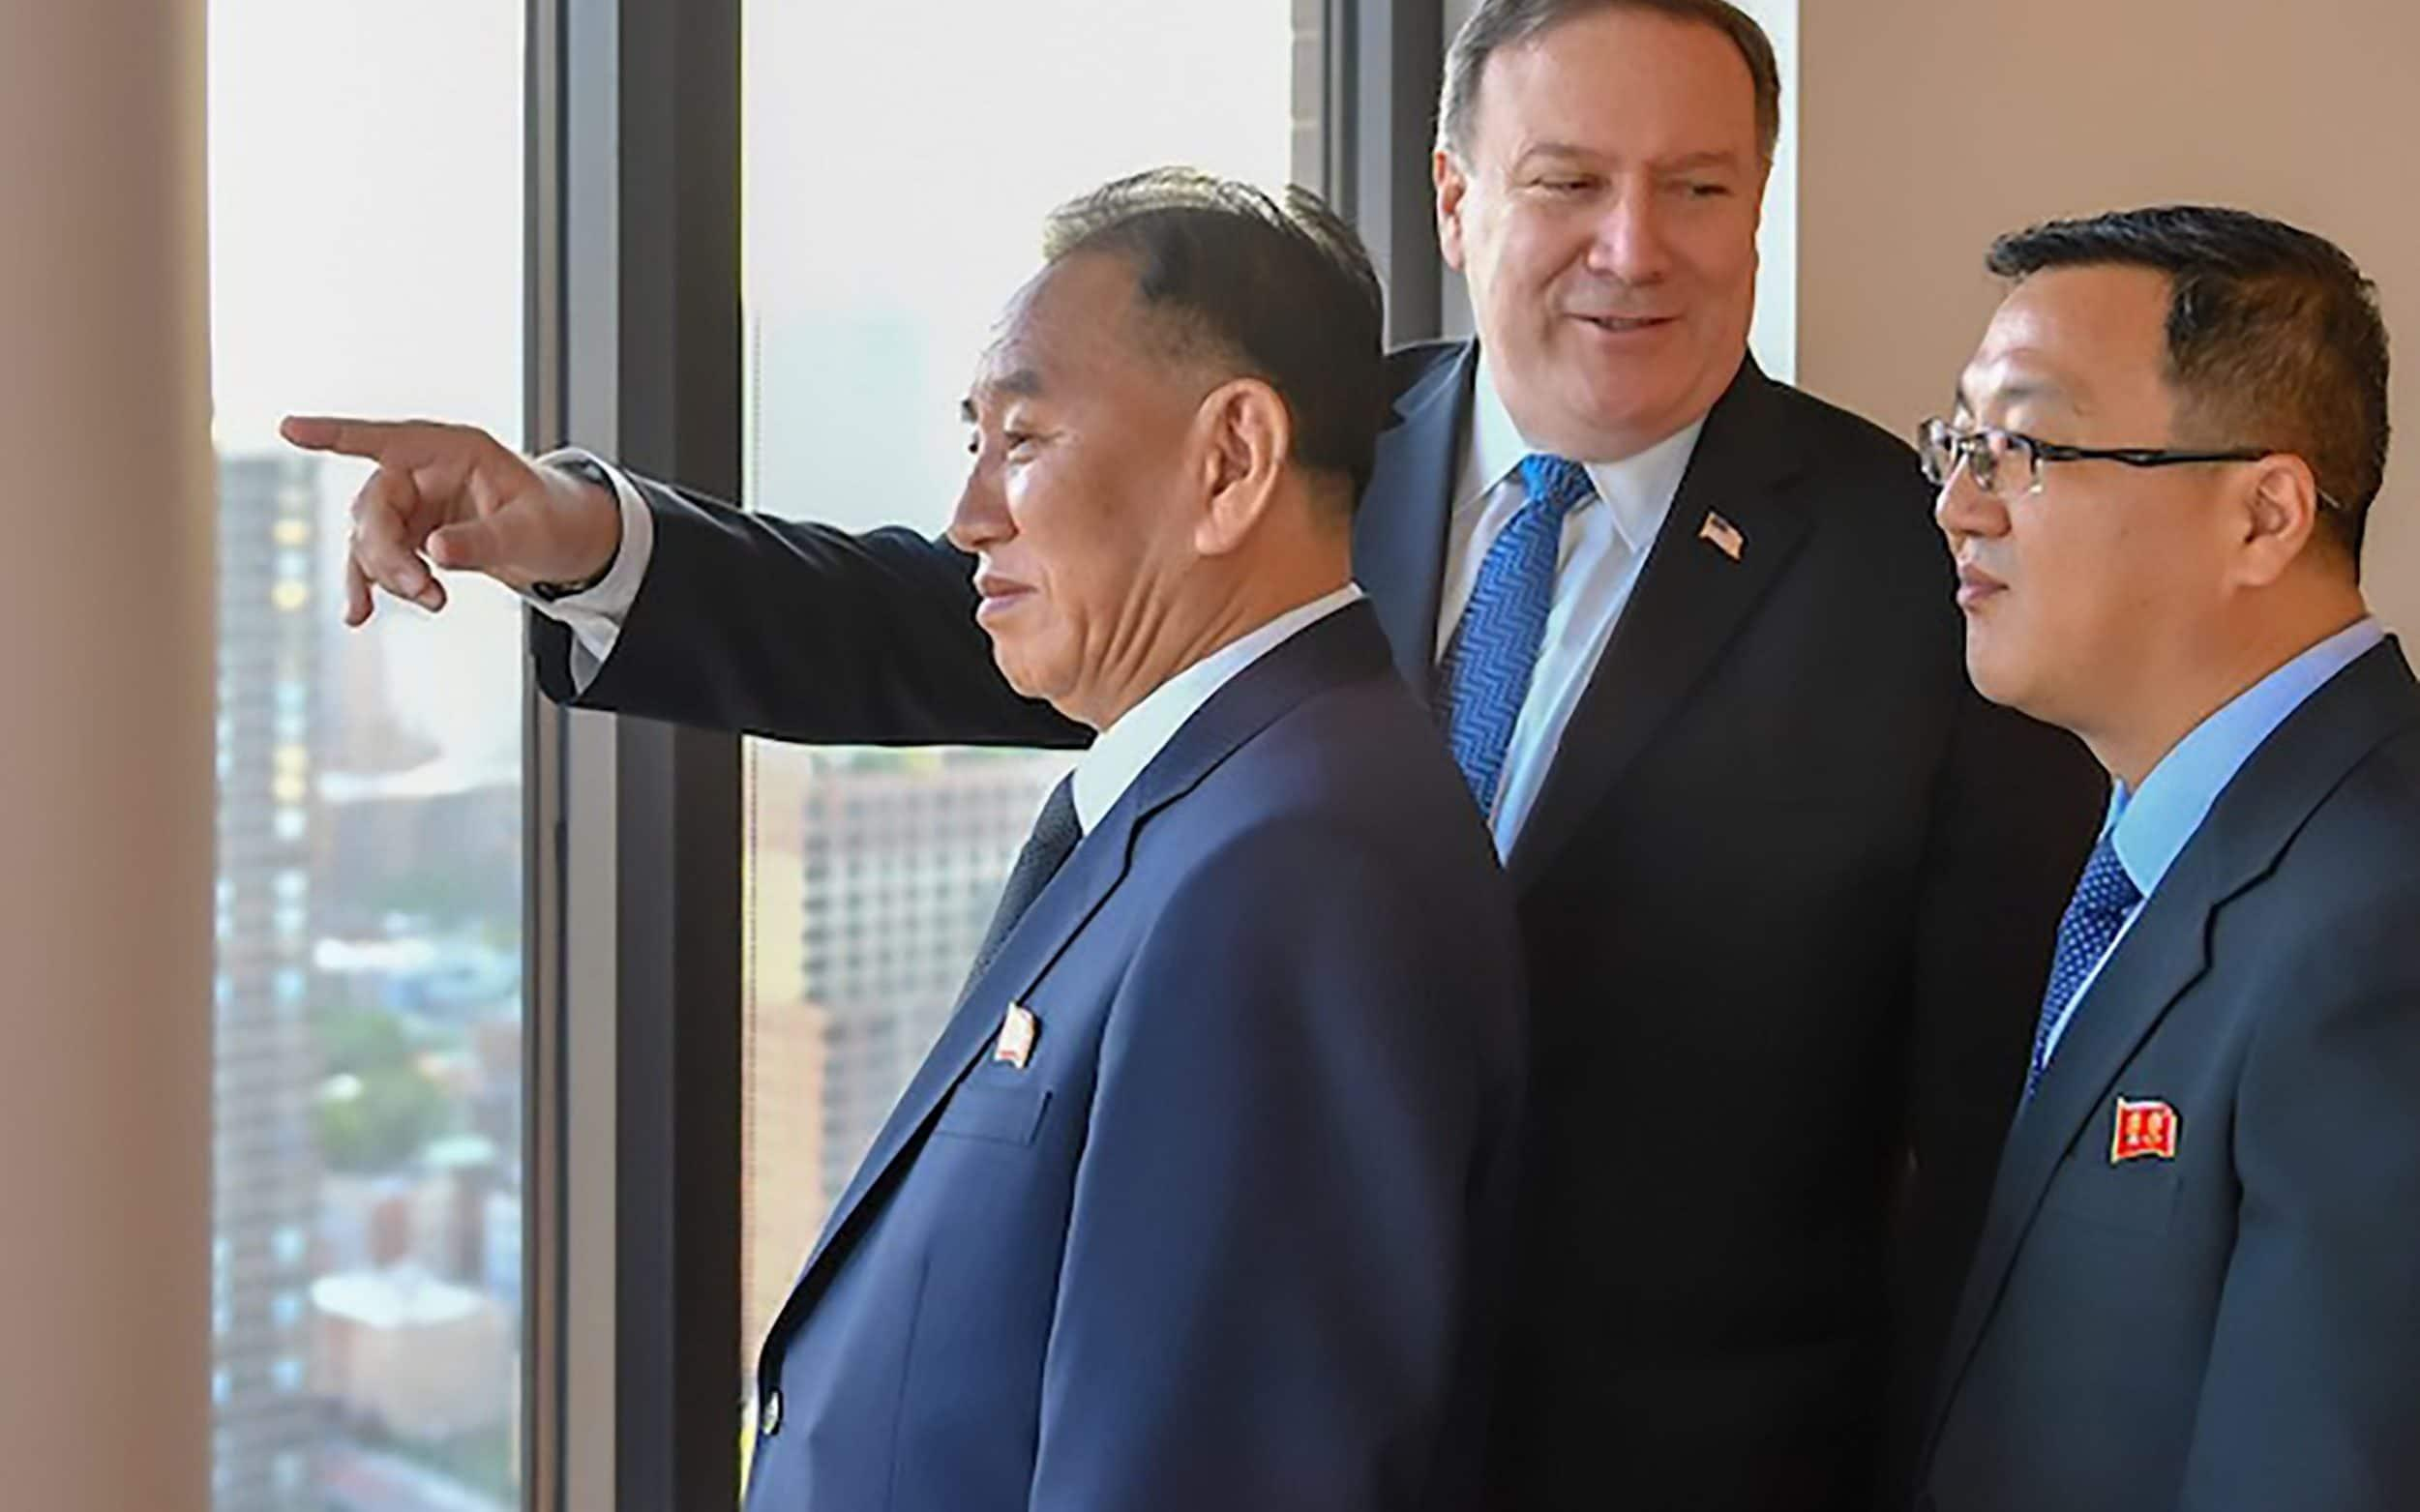 North Korean 'spymaster' Kim Yong-chol meets Mike Pompeo in New York ahead of planned Trump summit